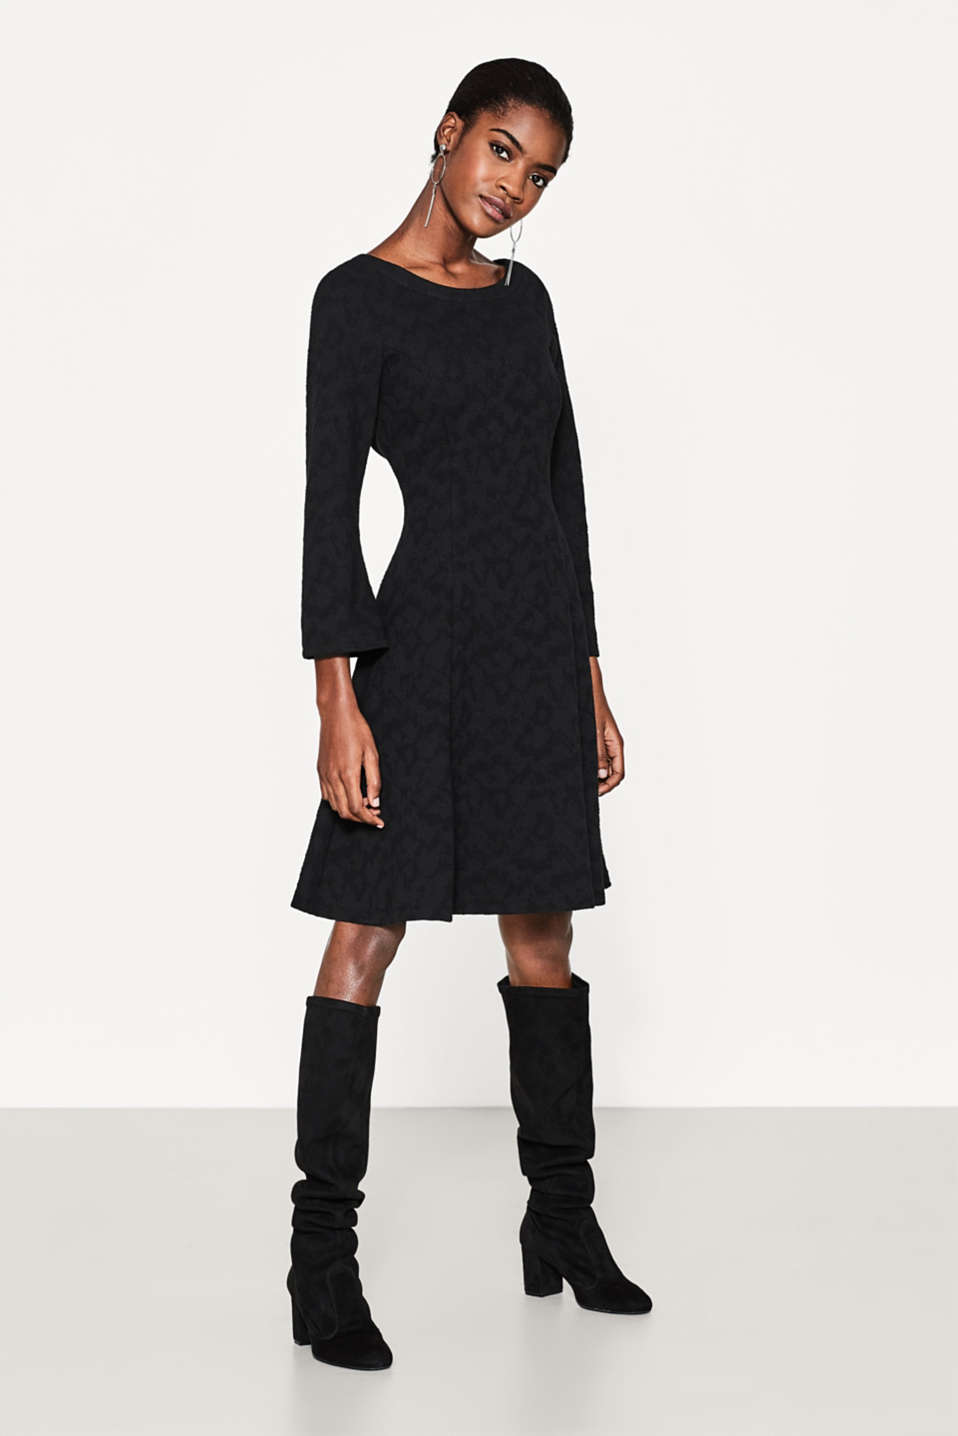 Esprit - Textured, flared sweatshirt dress